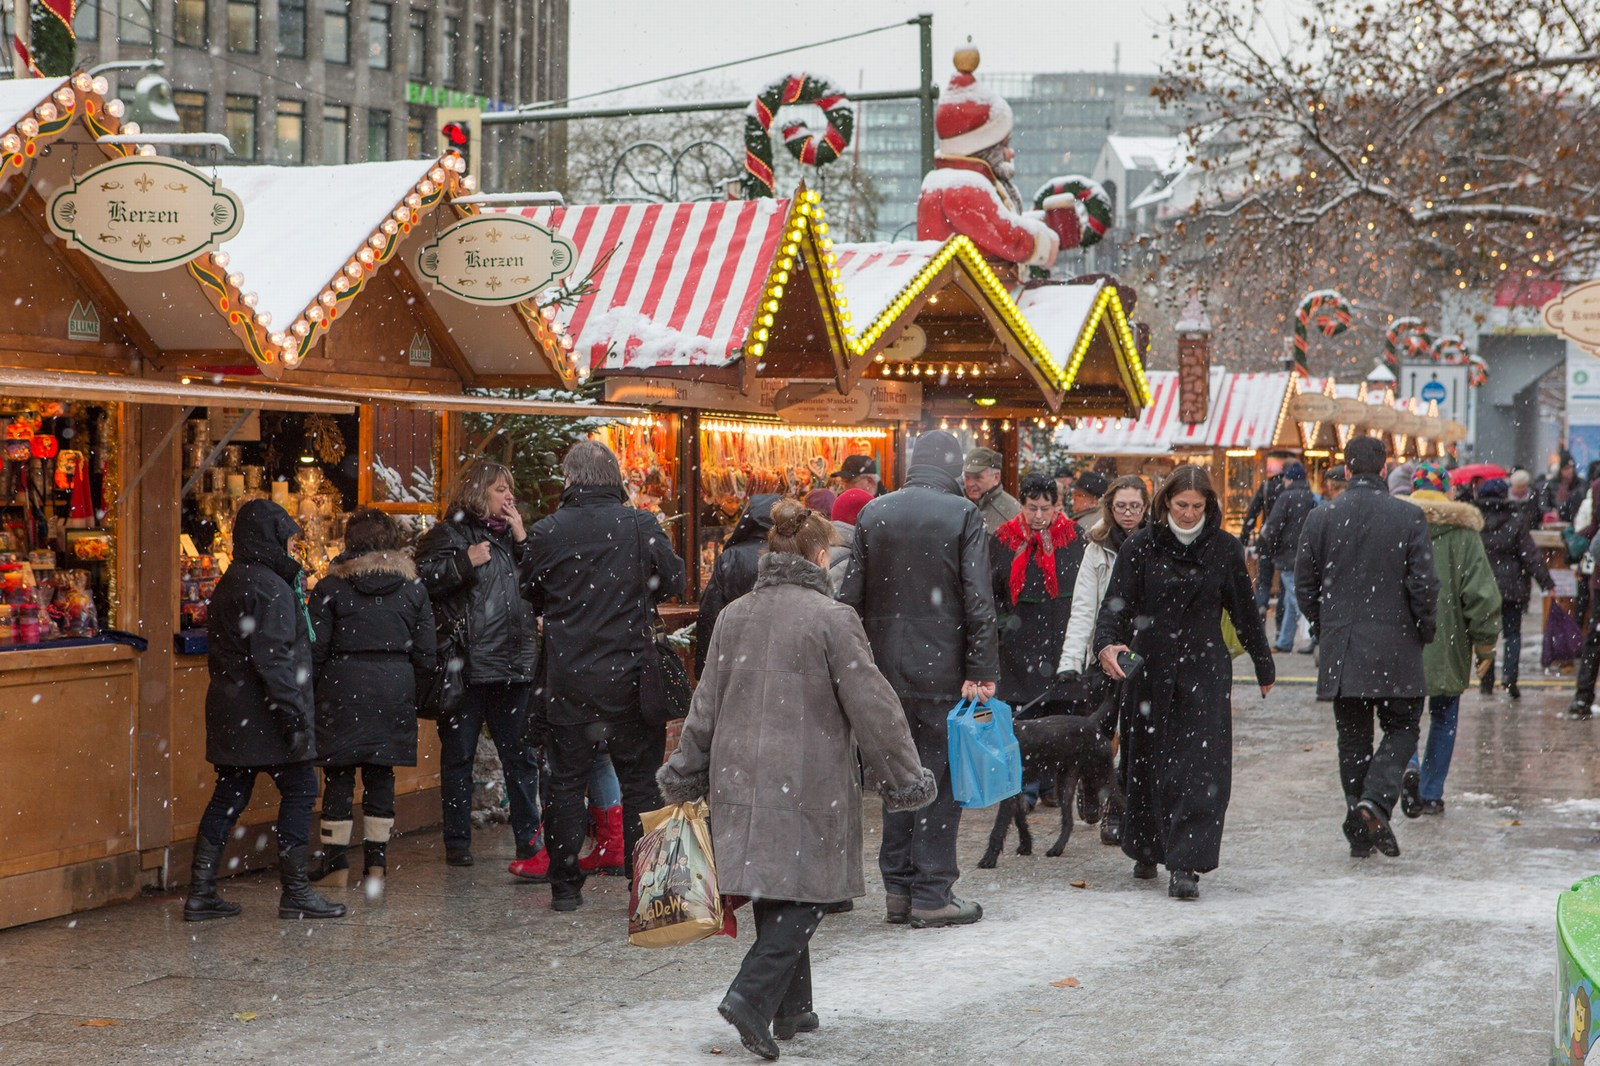 12 Killed in Berlin When Truck Drives Into Christmas Market  – President Niinistö: Clear, It Was Intentional